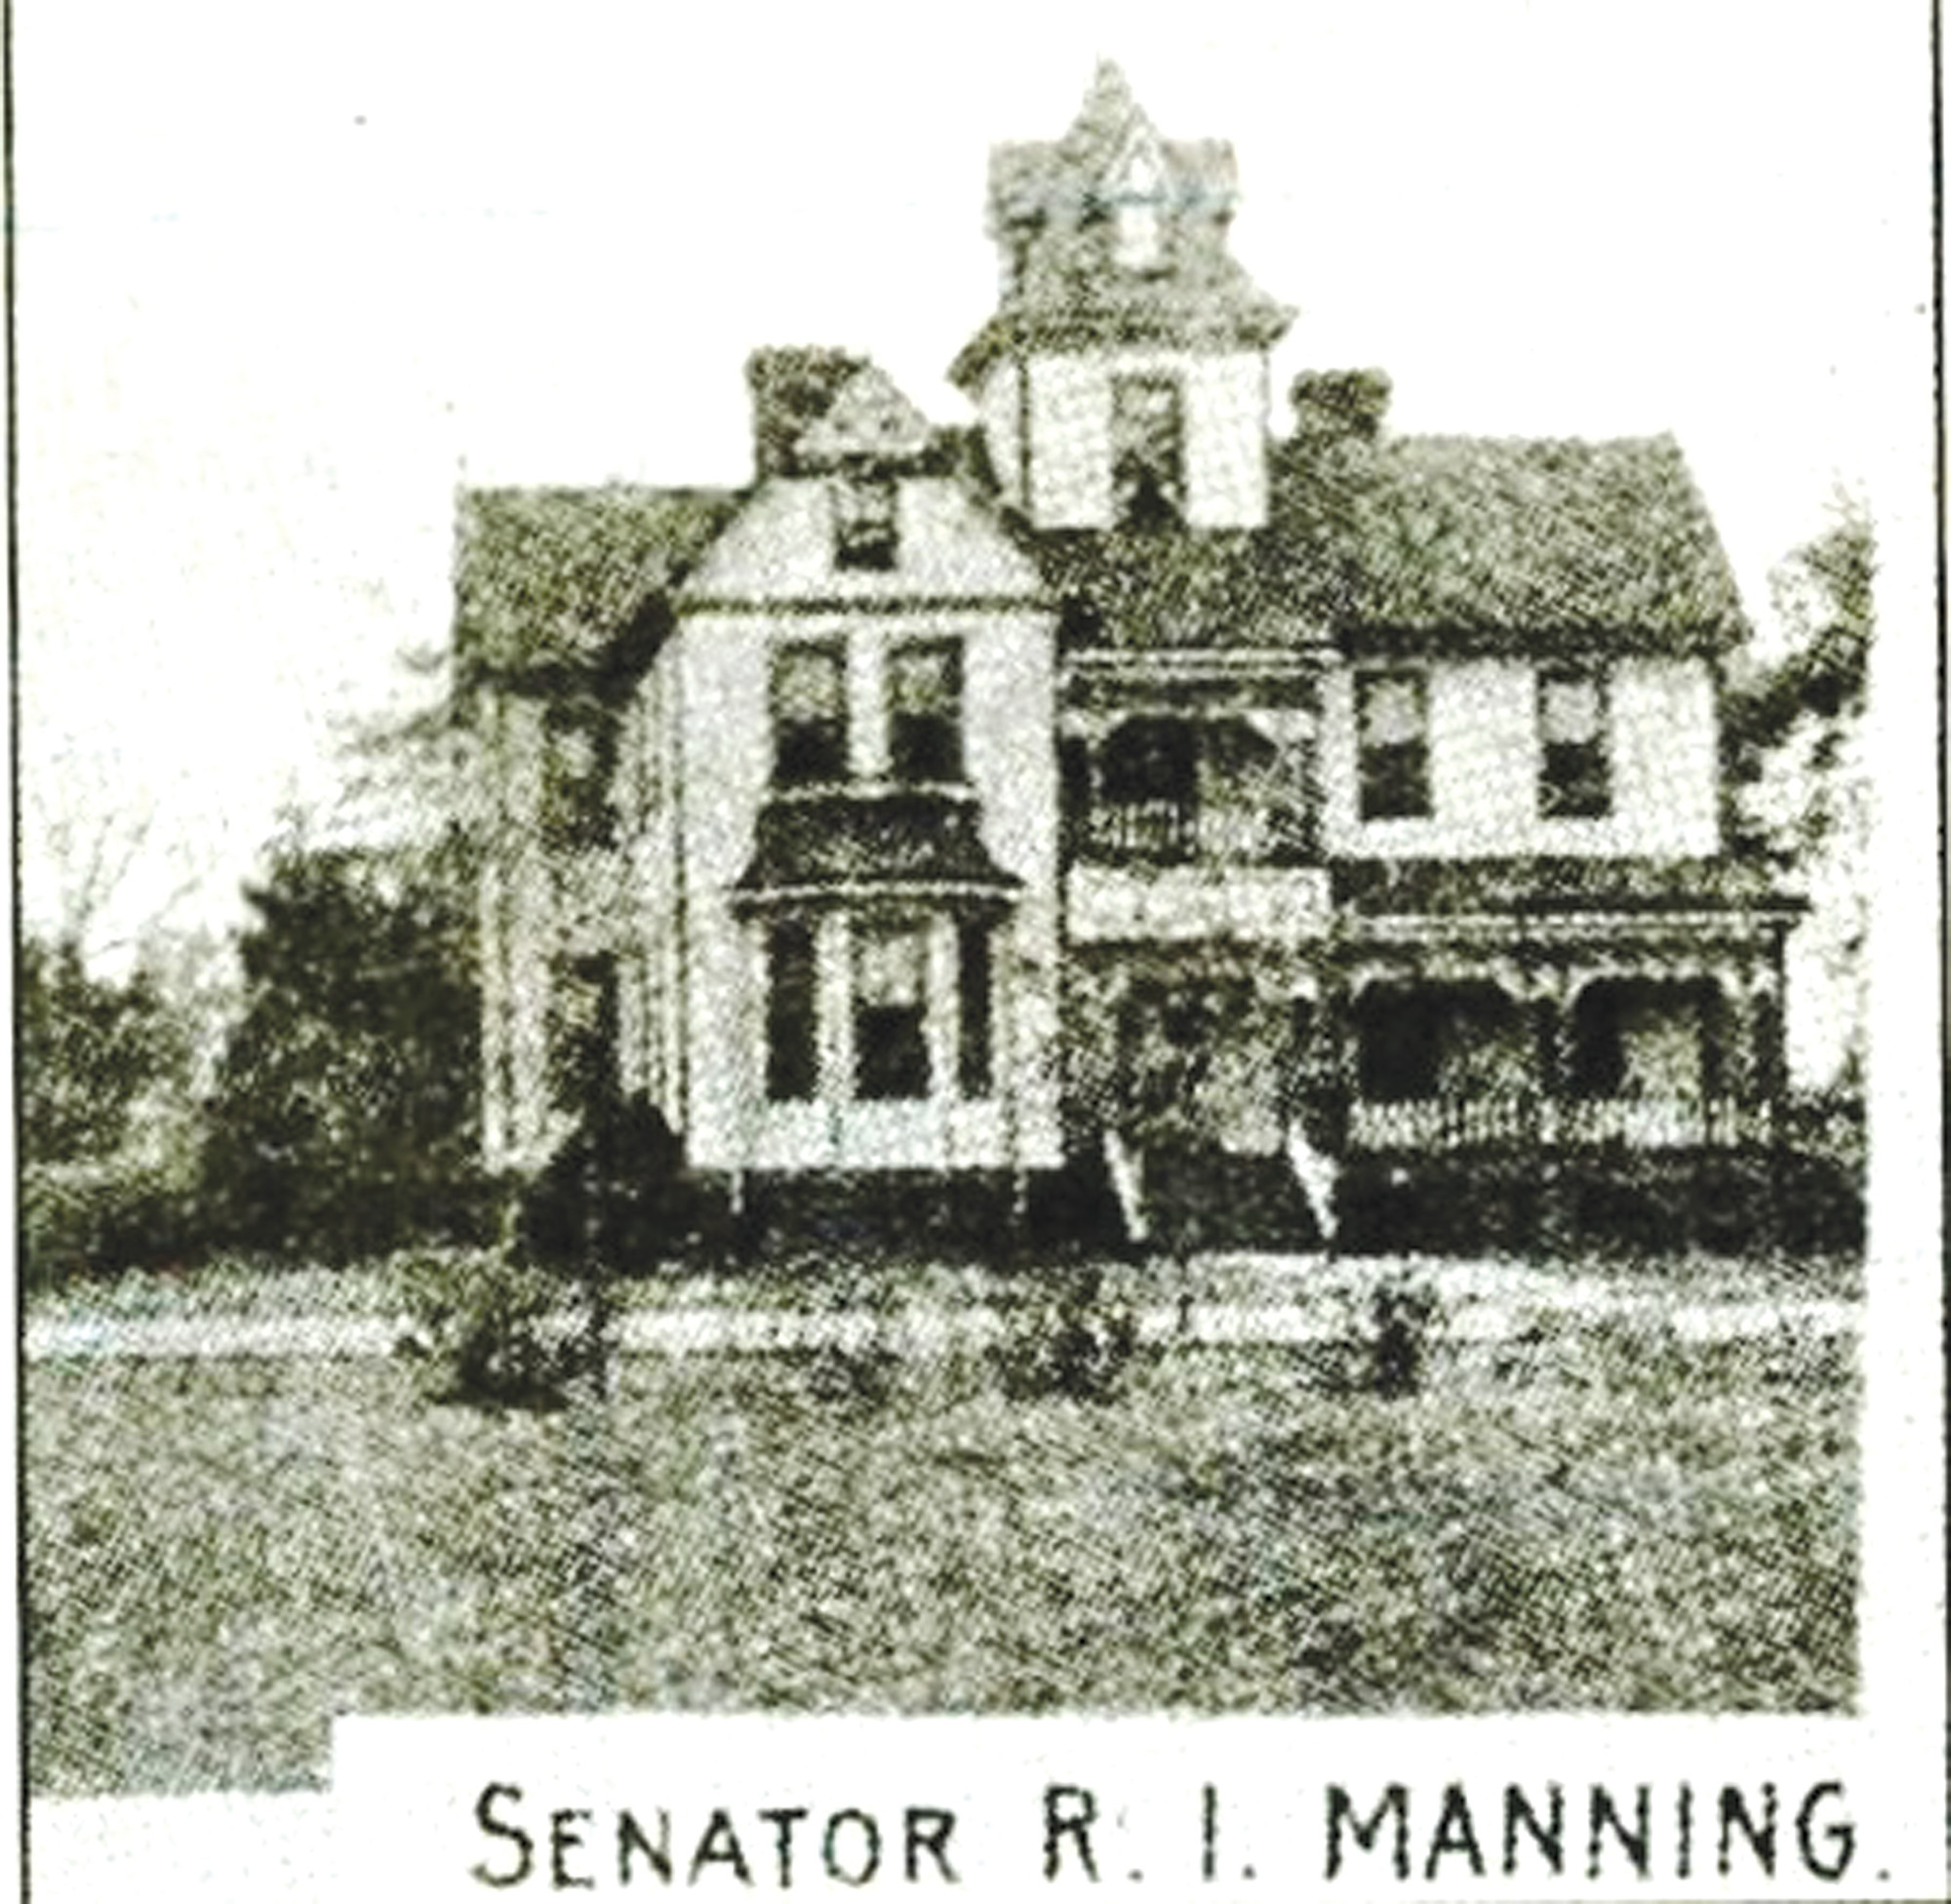 Sen. R. I. Manning's house on Liberty Street